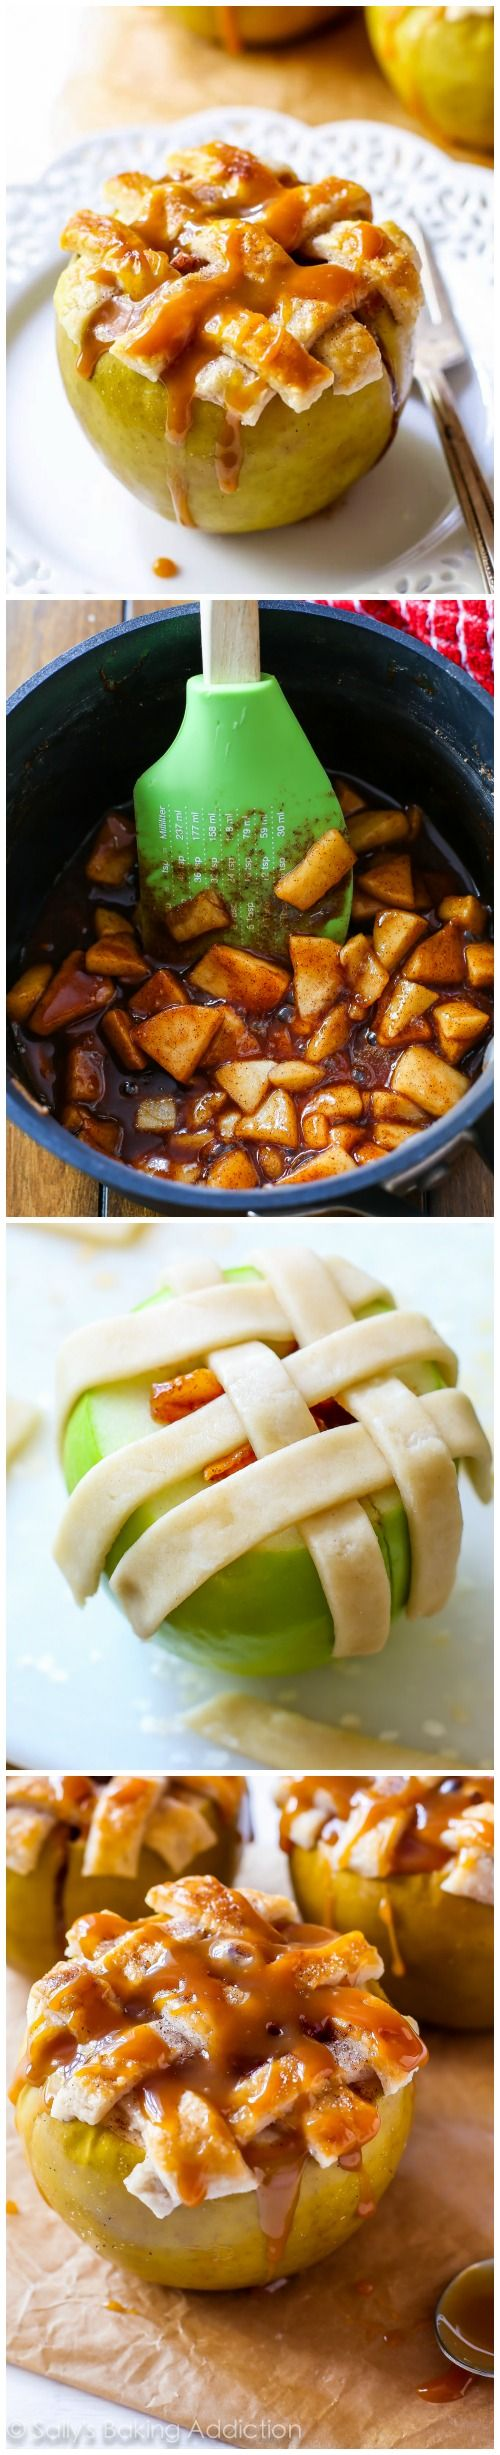 Everything you love about apple pie – the gooey cinnamon filling, the warm apples, the buttery homemade pie crust – all baked inside an apple!!